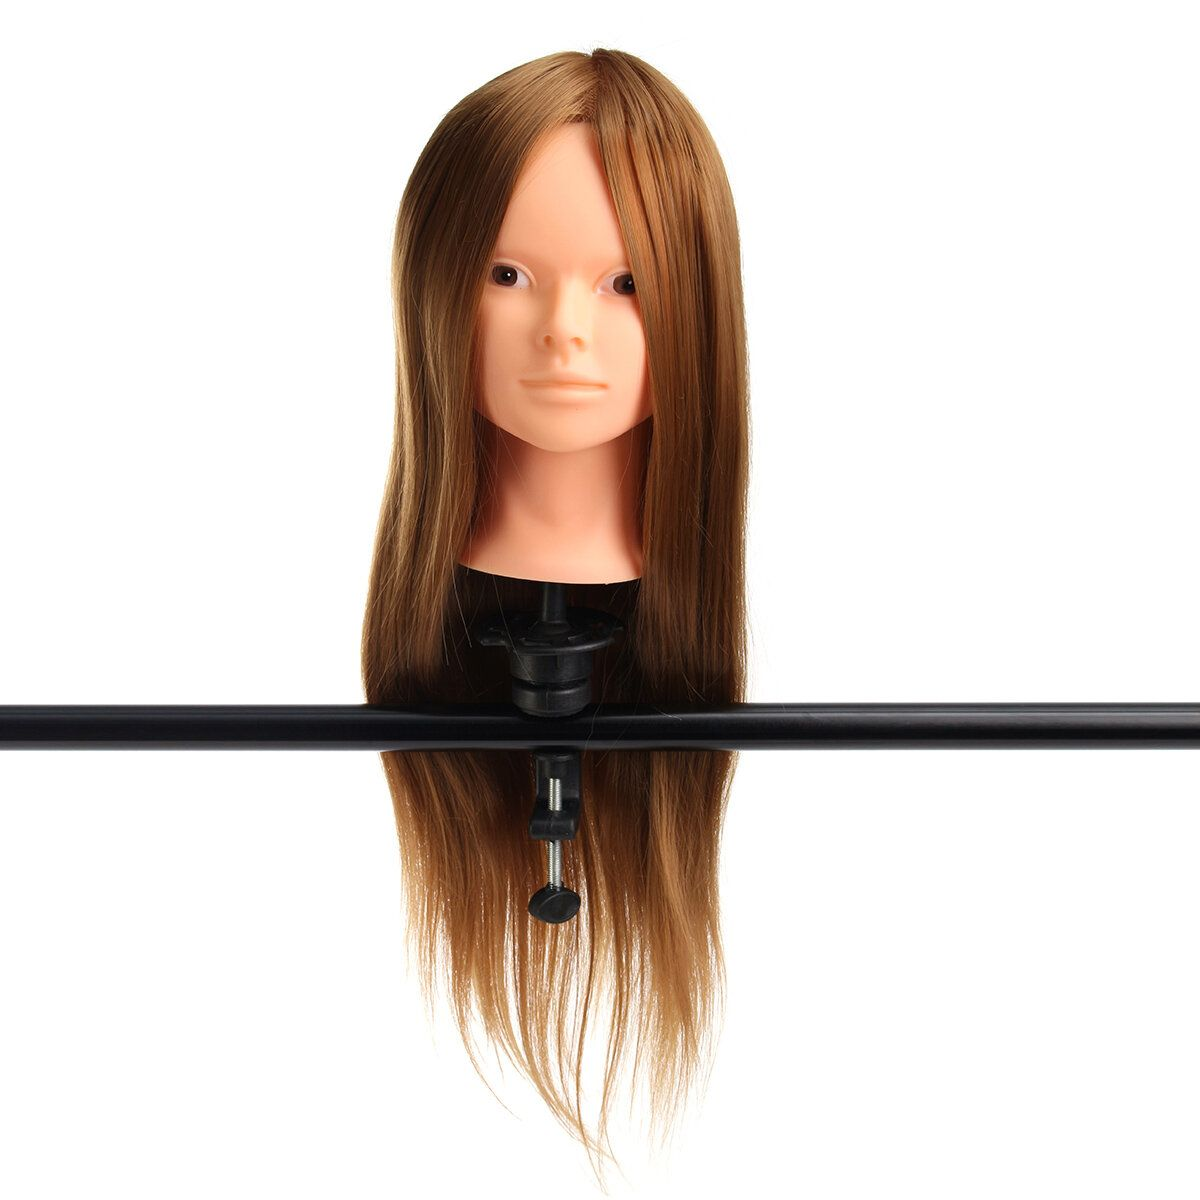 24 Gold 30% Real Hair Hairdressing Makeup Practice Hair Training Mannequin Head Model Clamp Holder